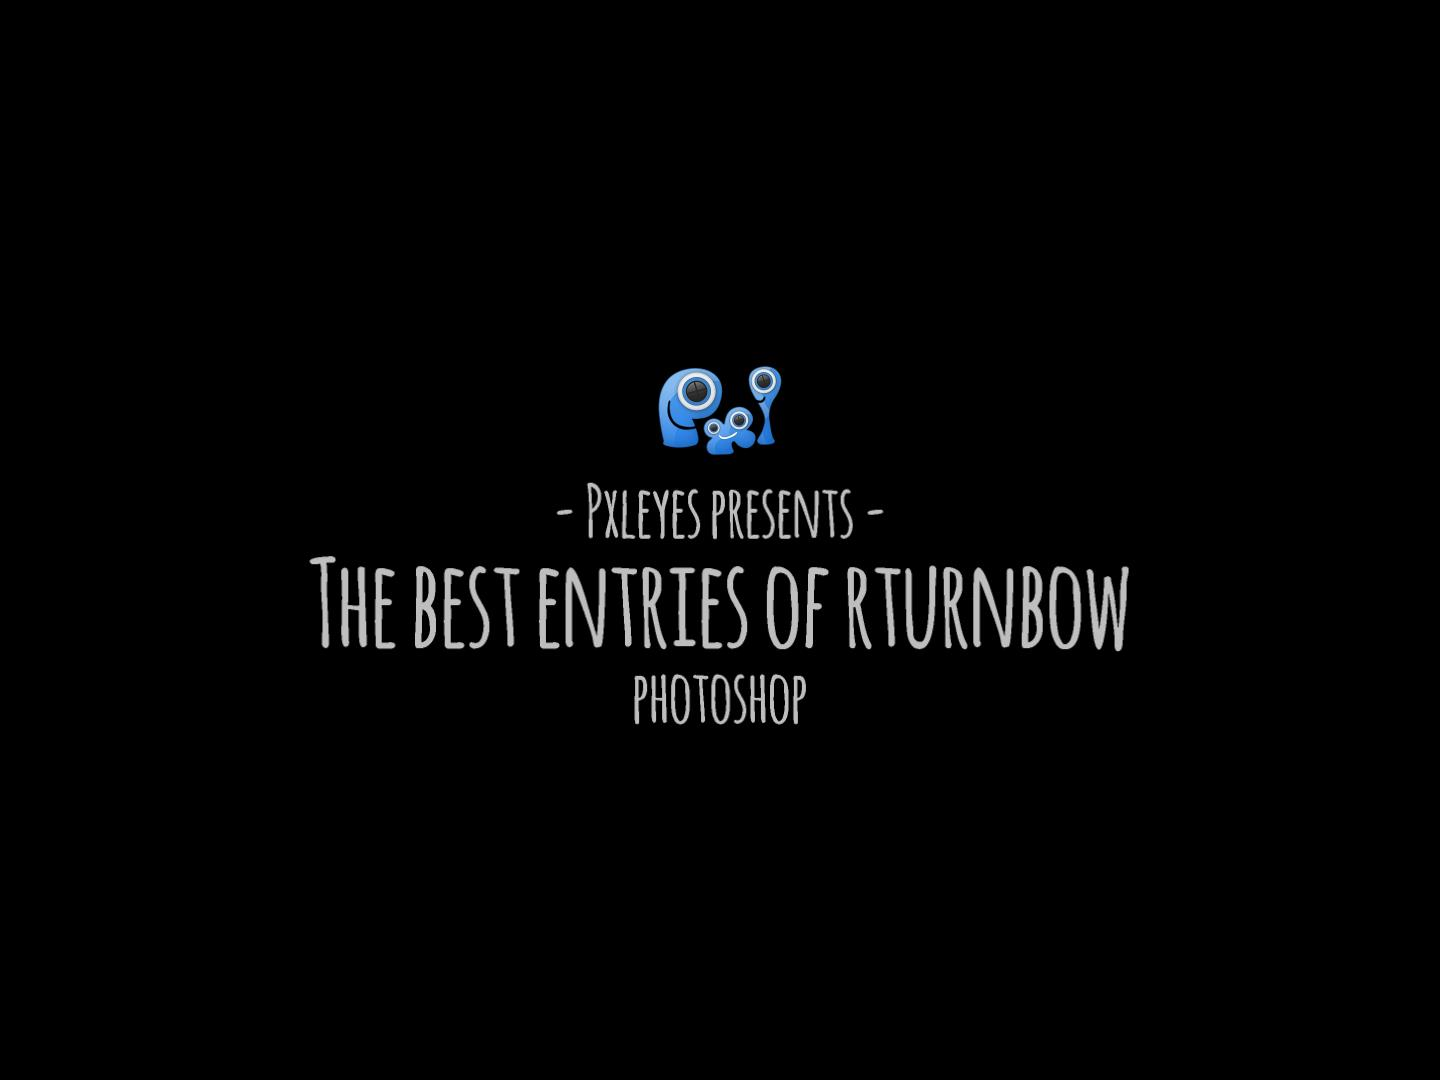 The best entries of rturnbow